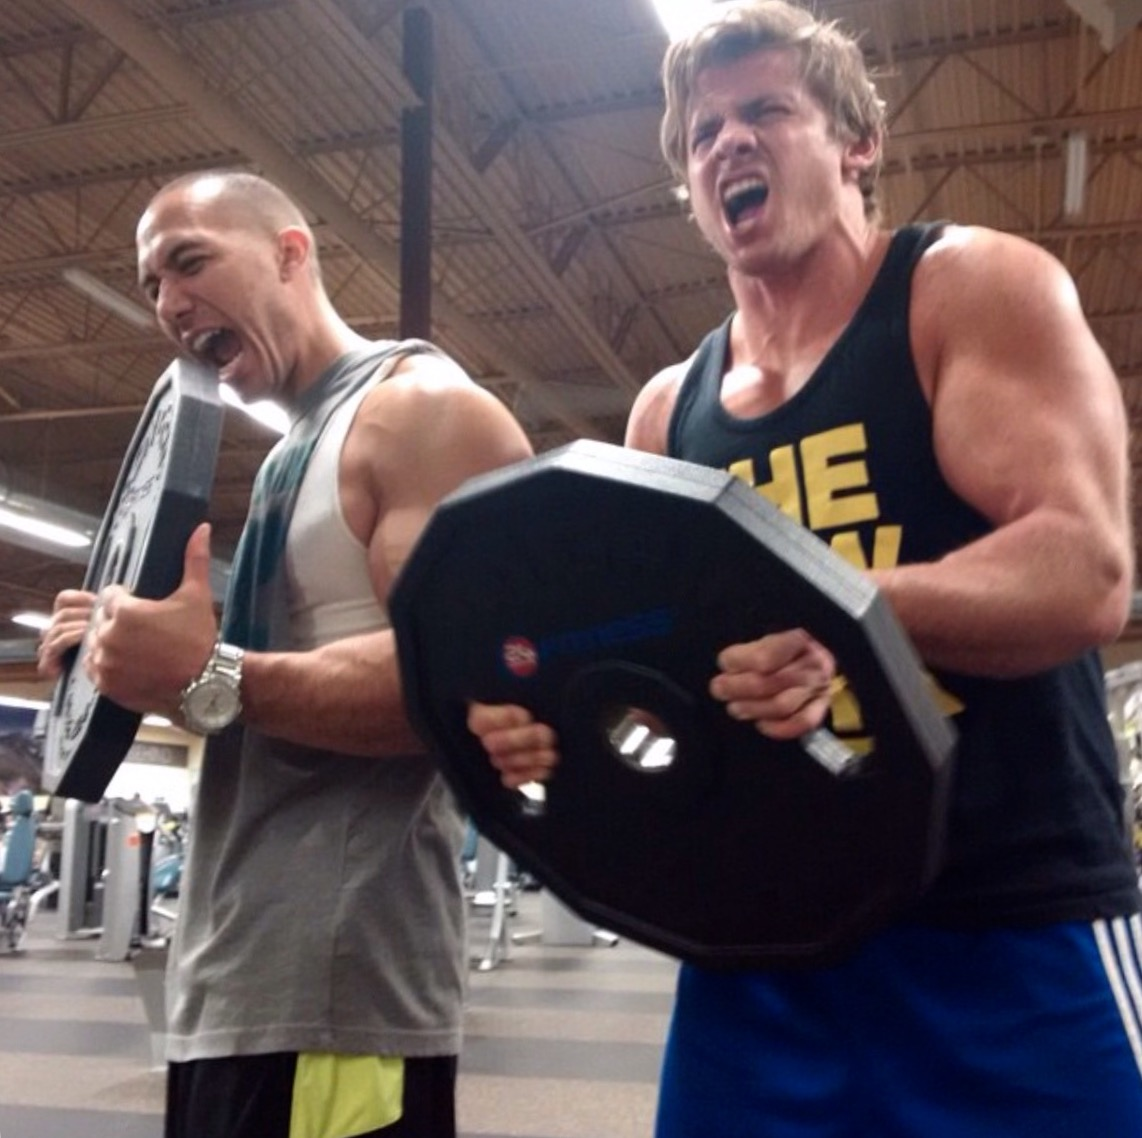 Two men lifting a huge round weight